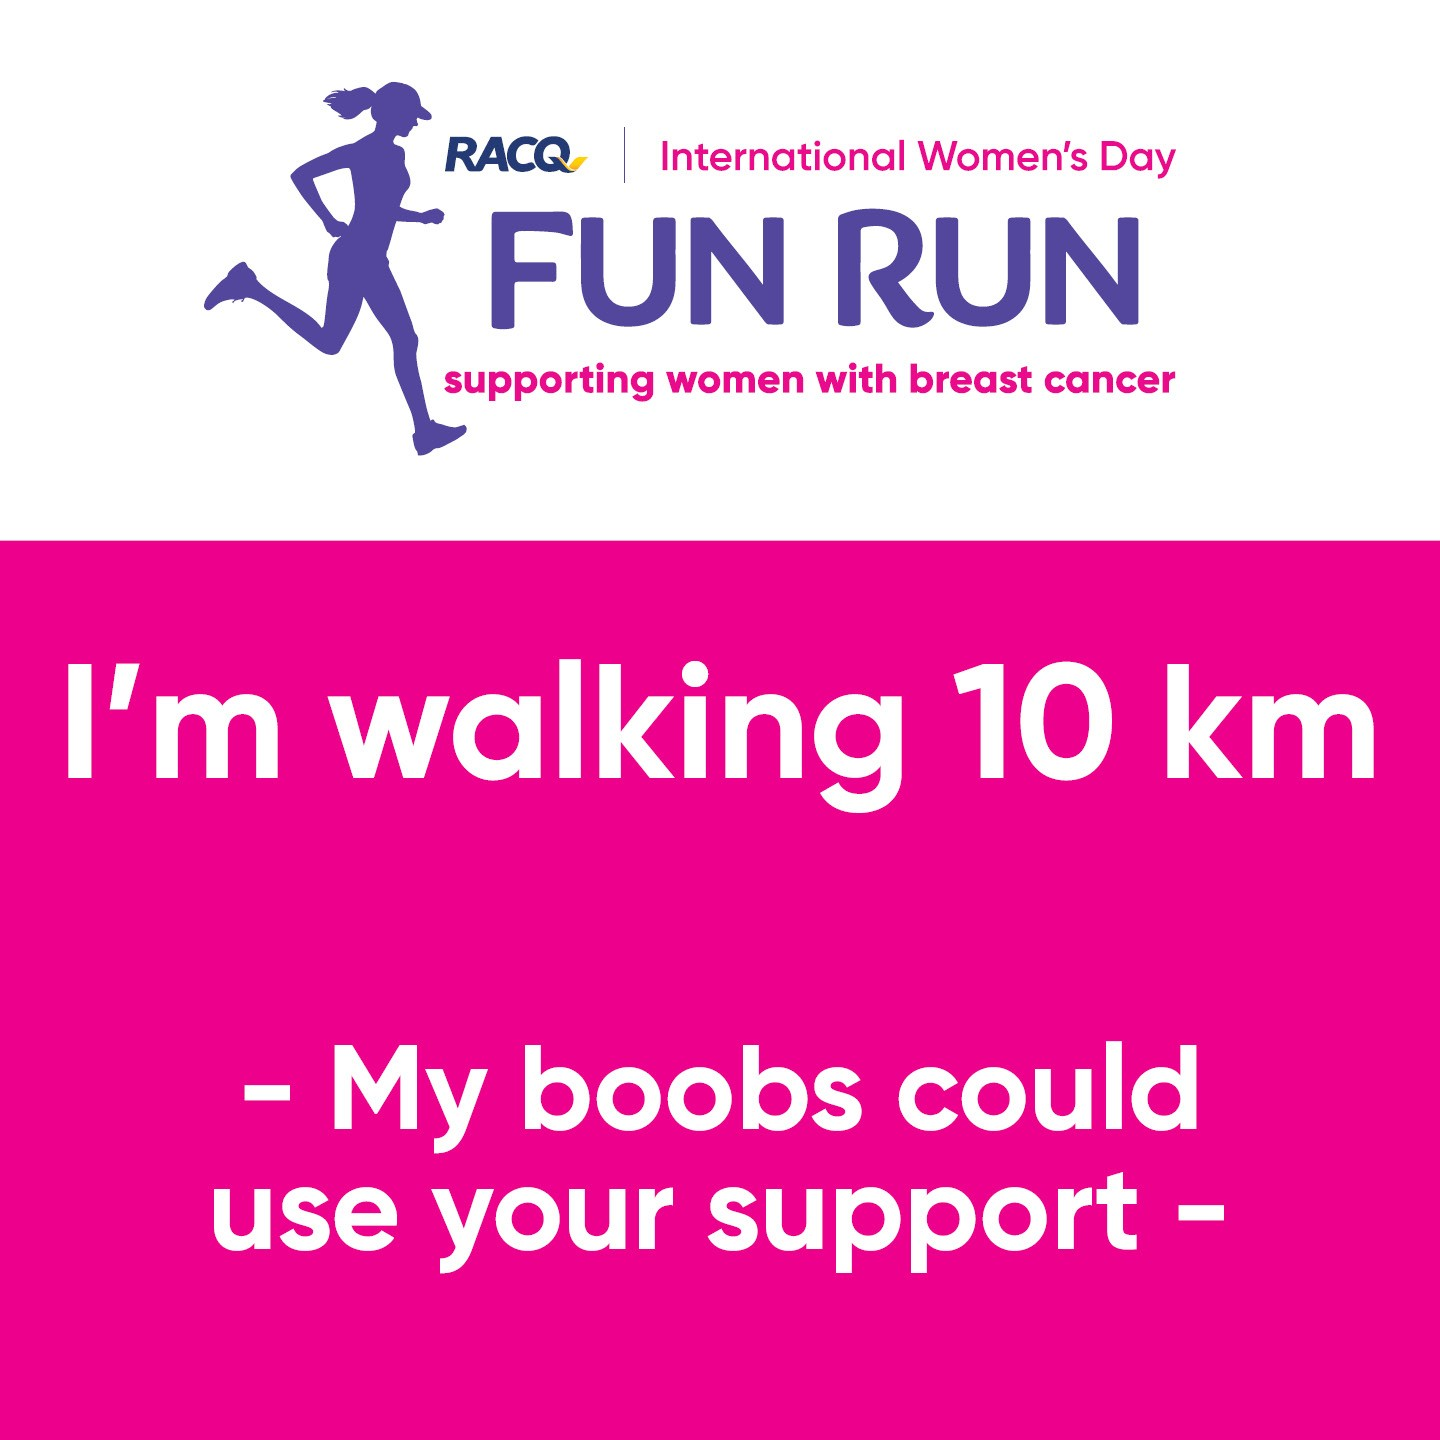 Instagram - I'm walking 10 km - My boobs could use your support